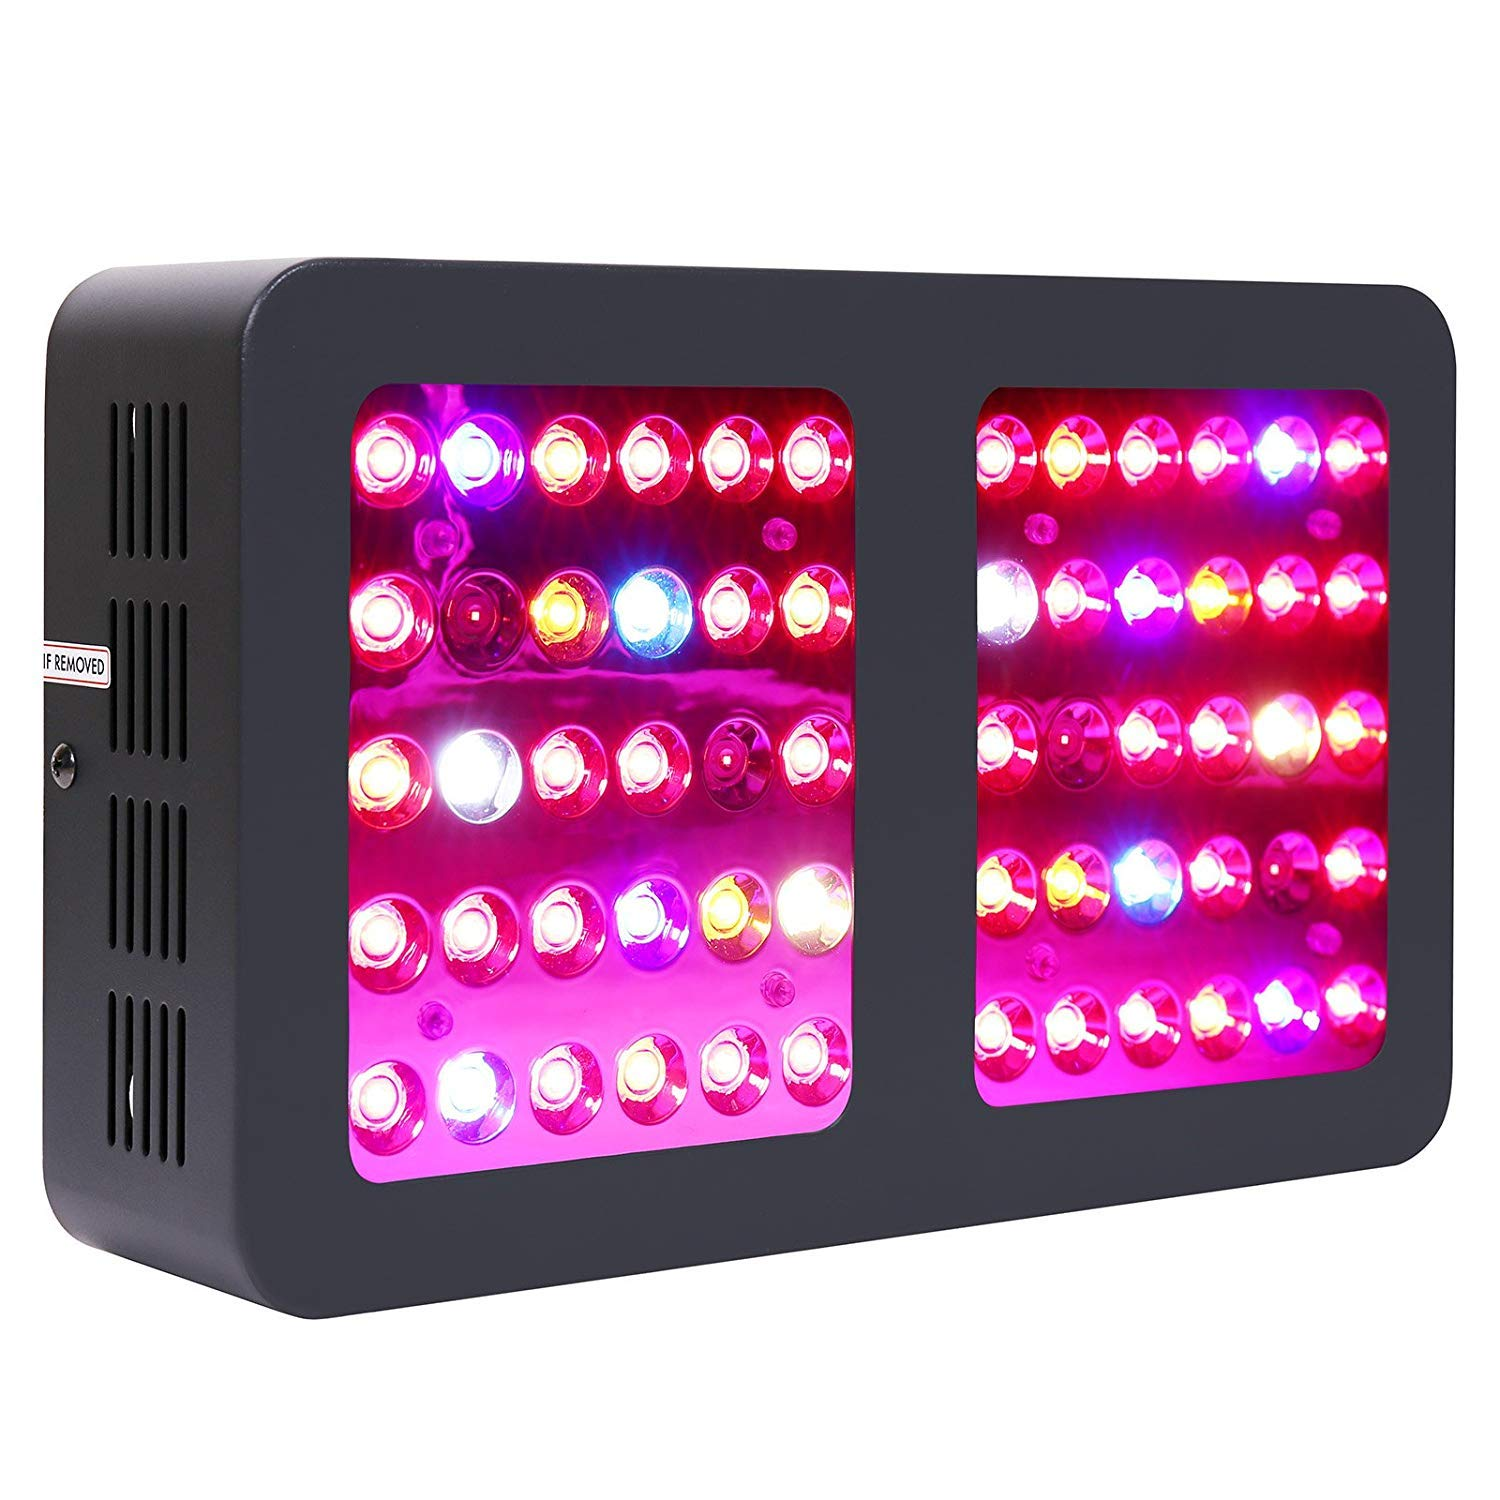 iPower GLLEDXA300CNEW 300W LED Grow Light Full Spectrum for Indoor Plants Veg and Flower by iPower